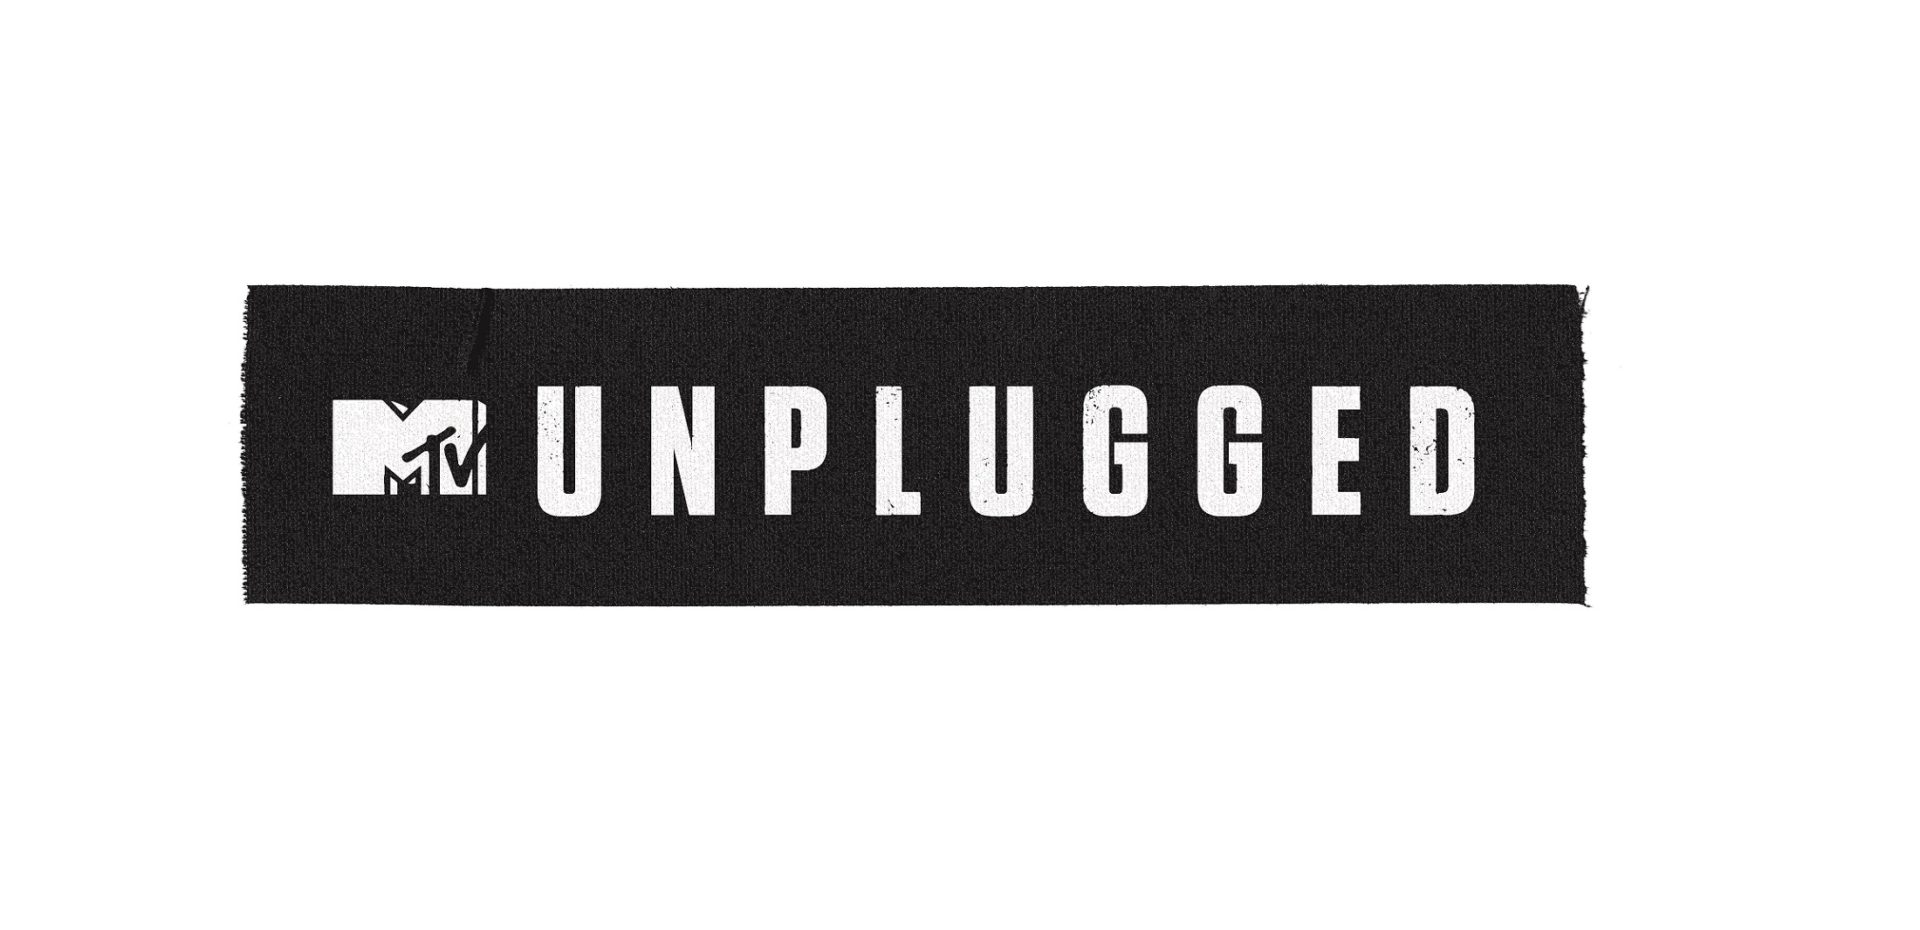 MTV UNPLUGGED and TRL Reboots Anchor MTV's Fresh Fall Lineup – Bell